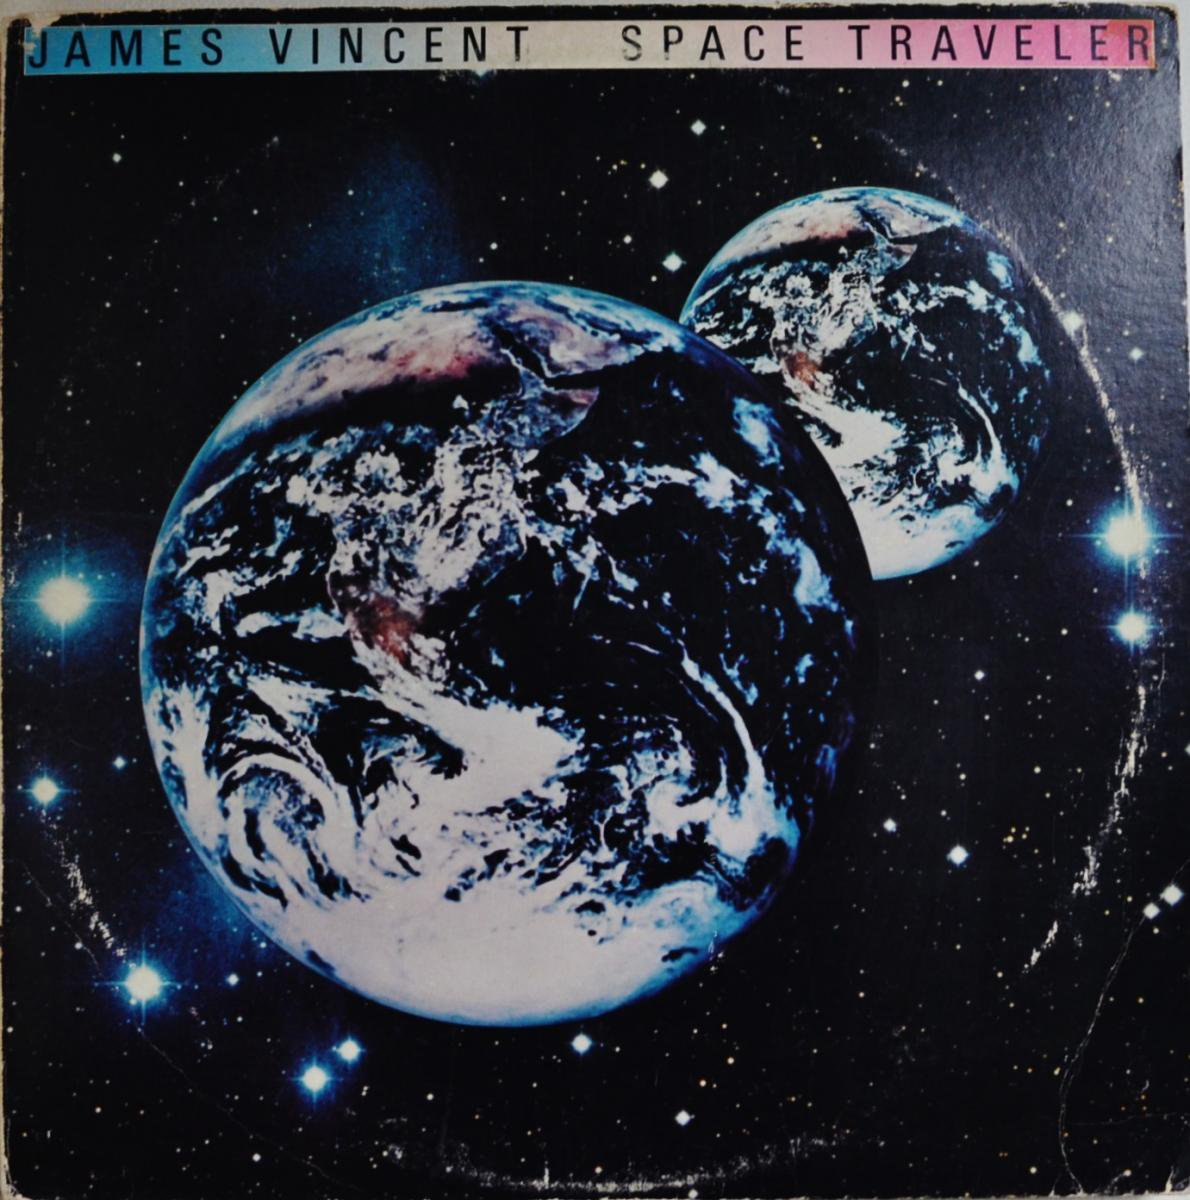 JAMES VINCENT / SPACE TRAVELER (LP)